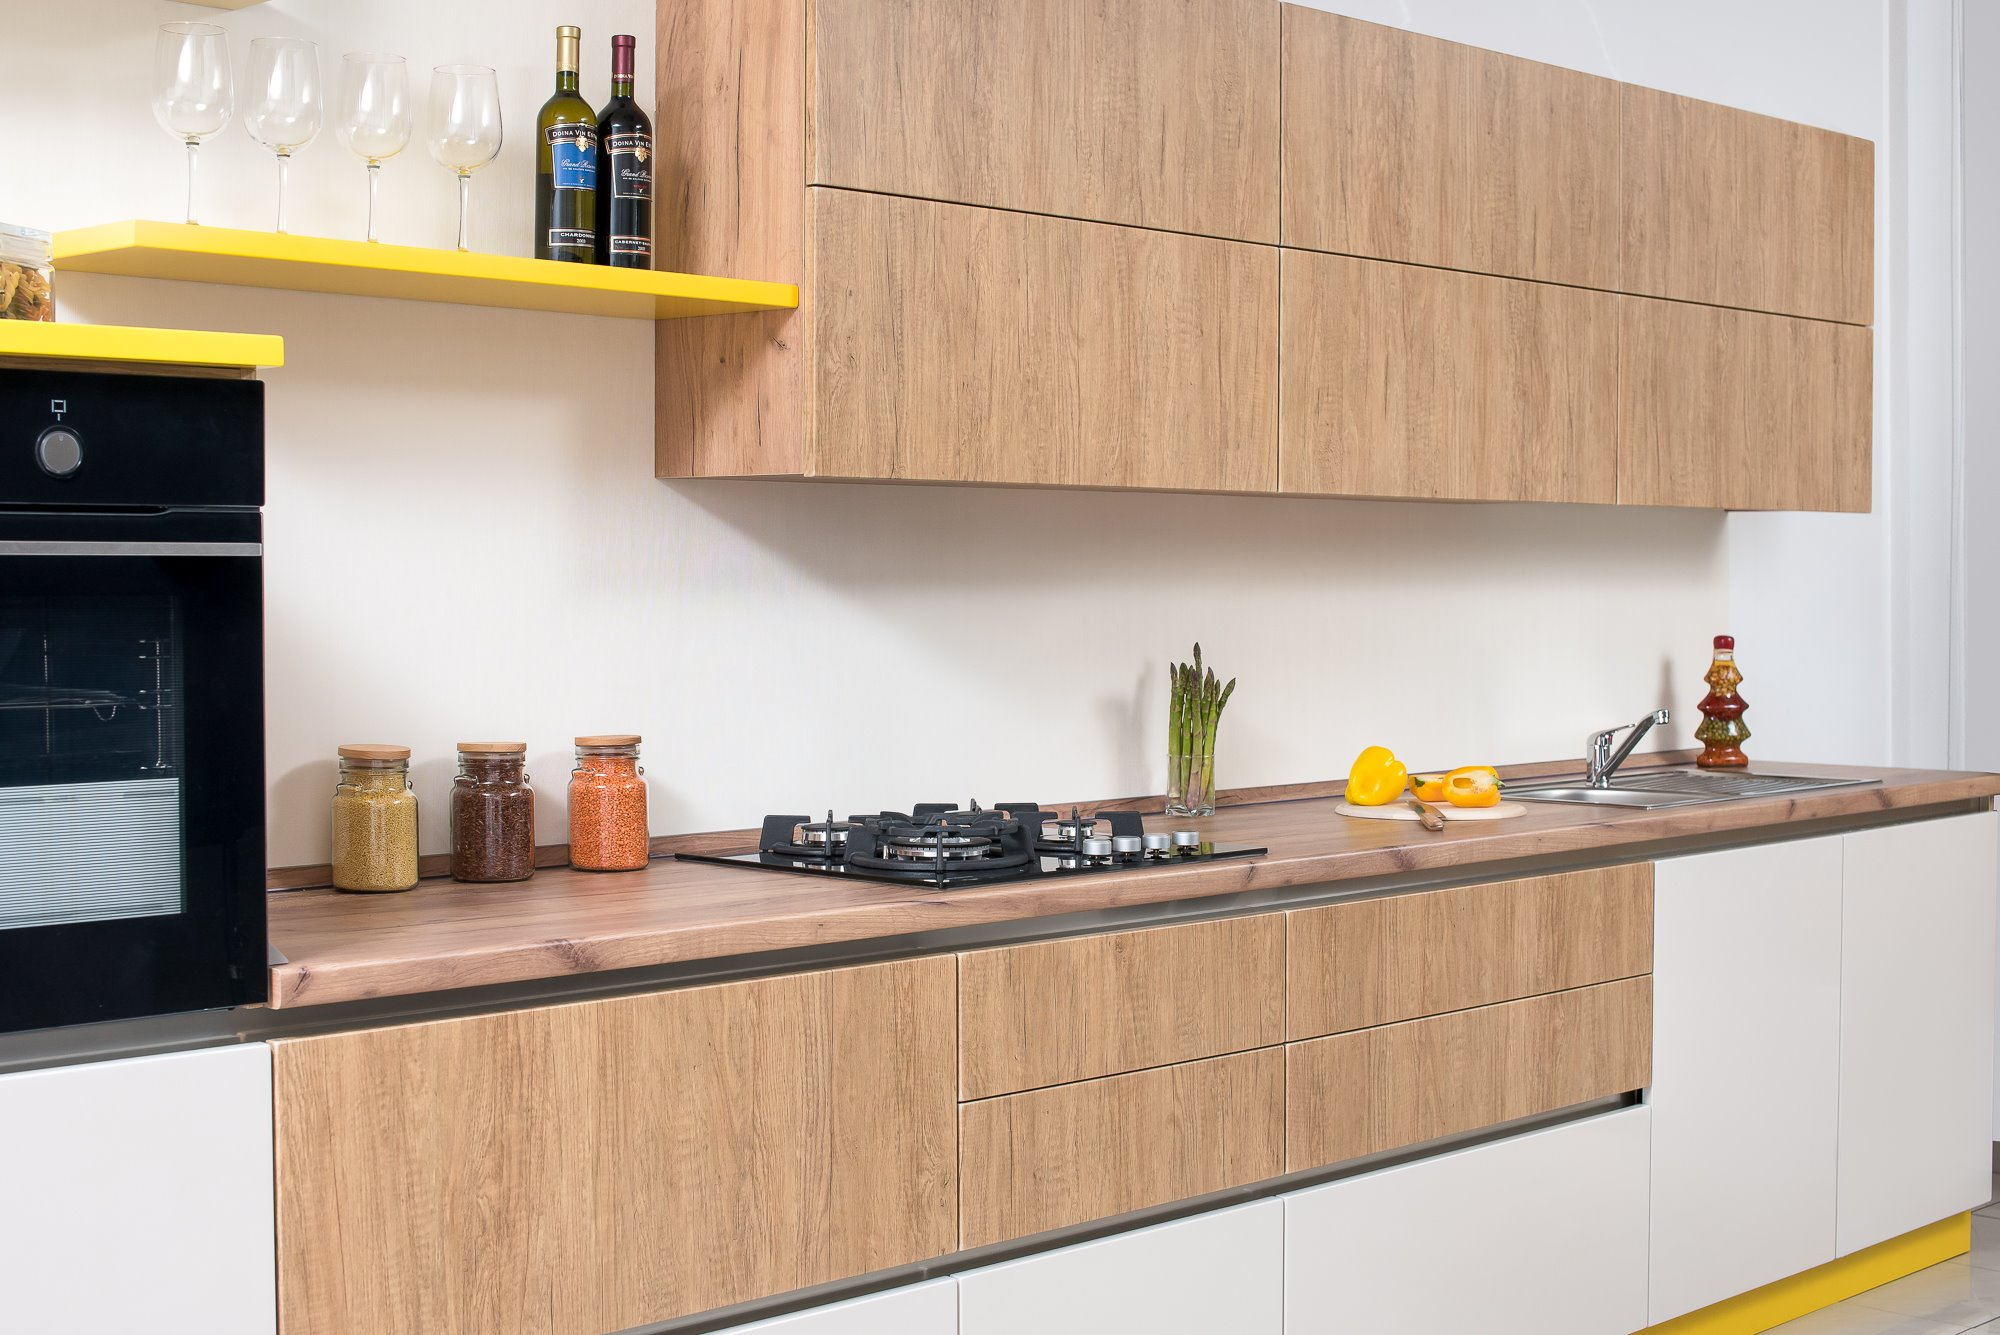 Glossy facades in the kitchen than to wash the glossy facades in the kitchen from fat